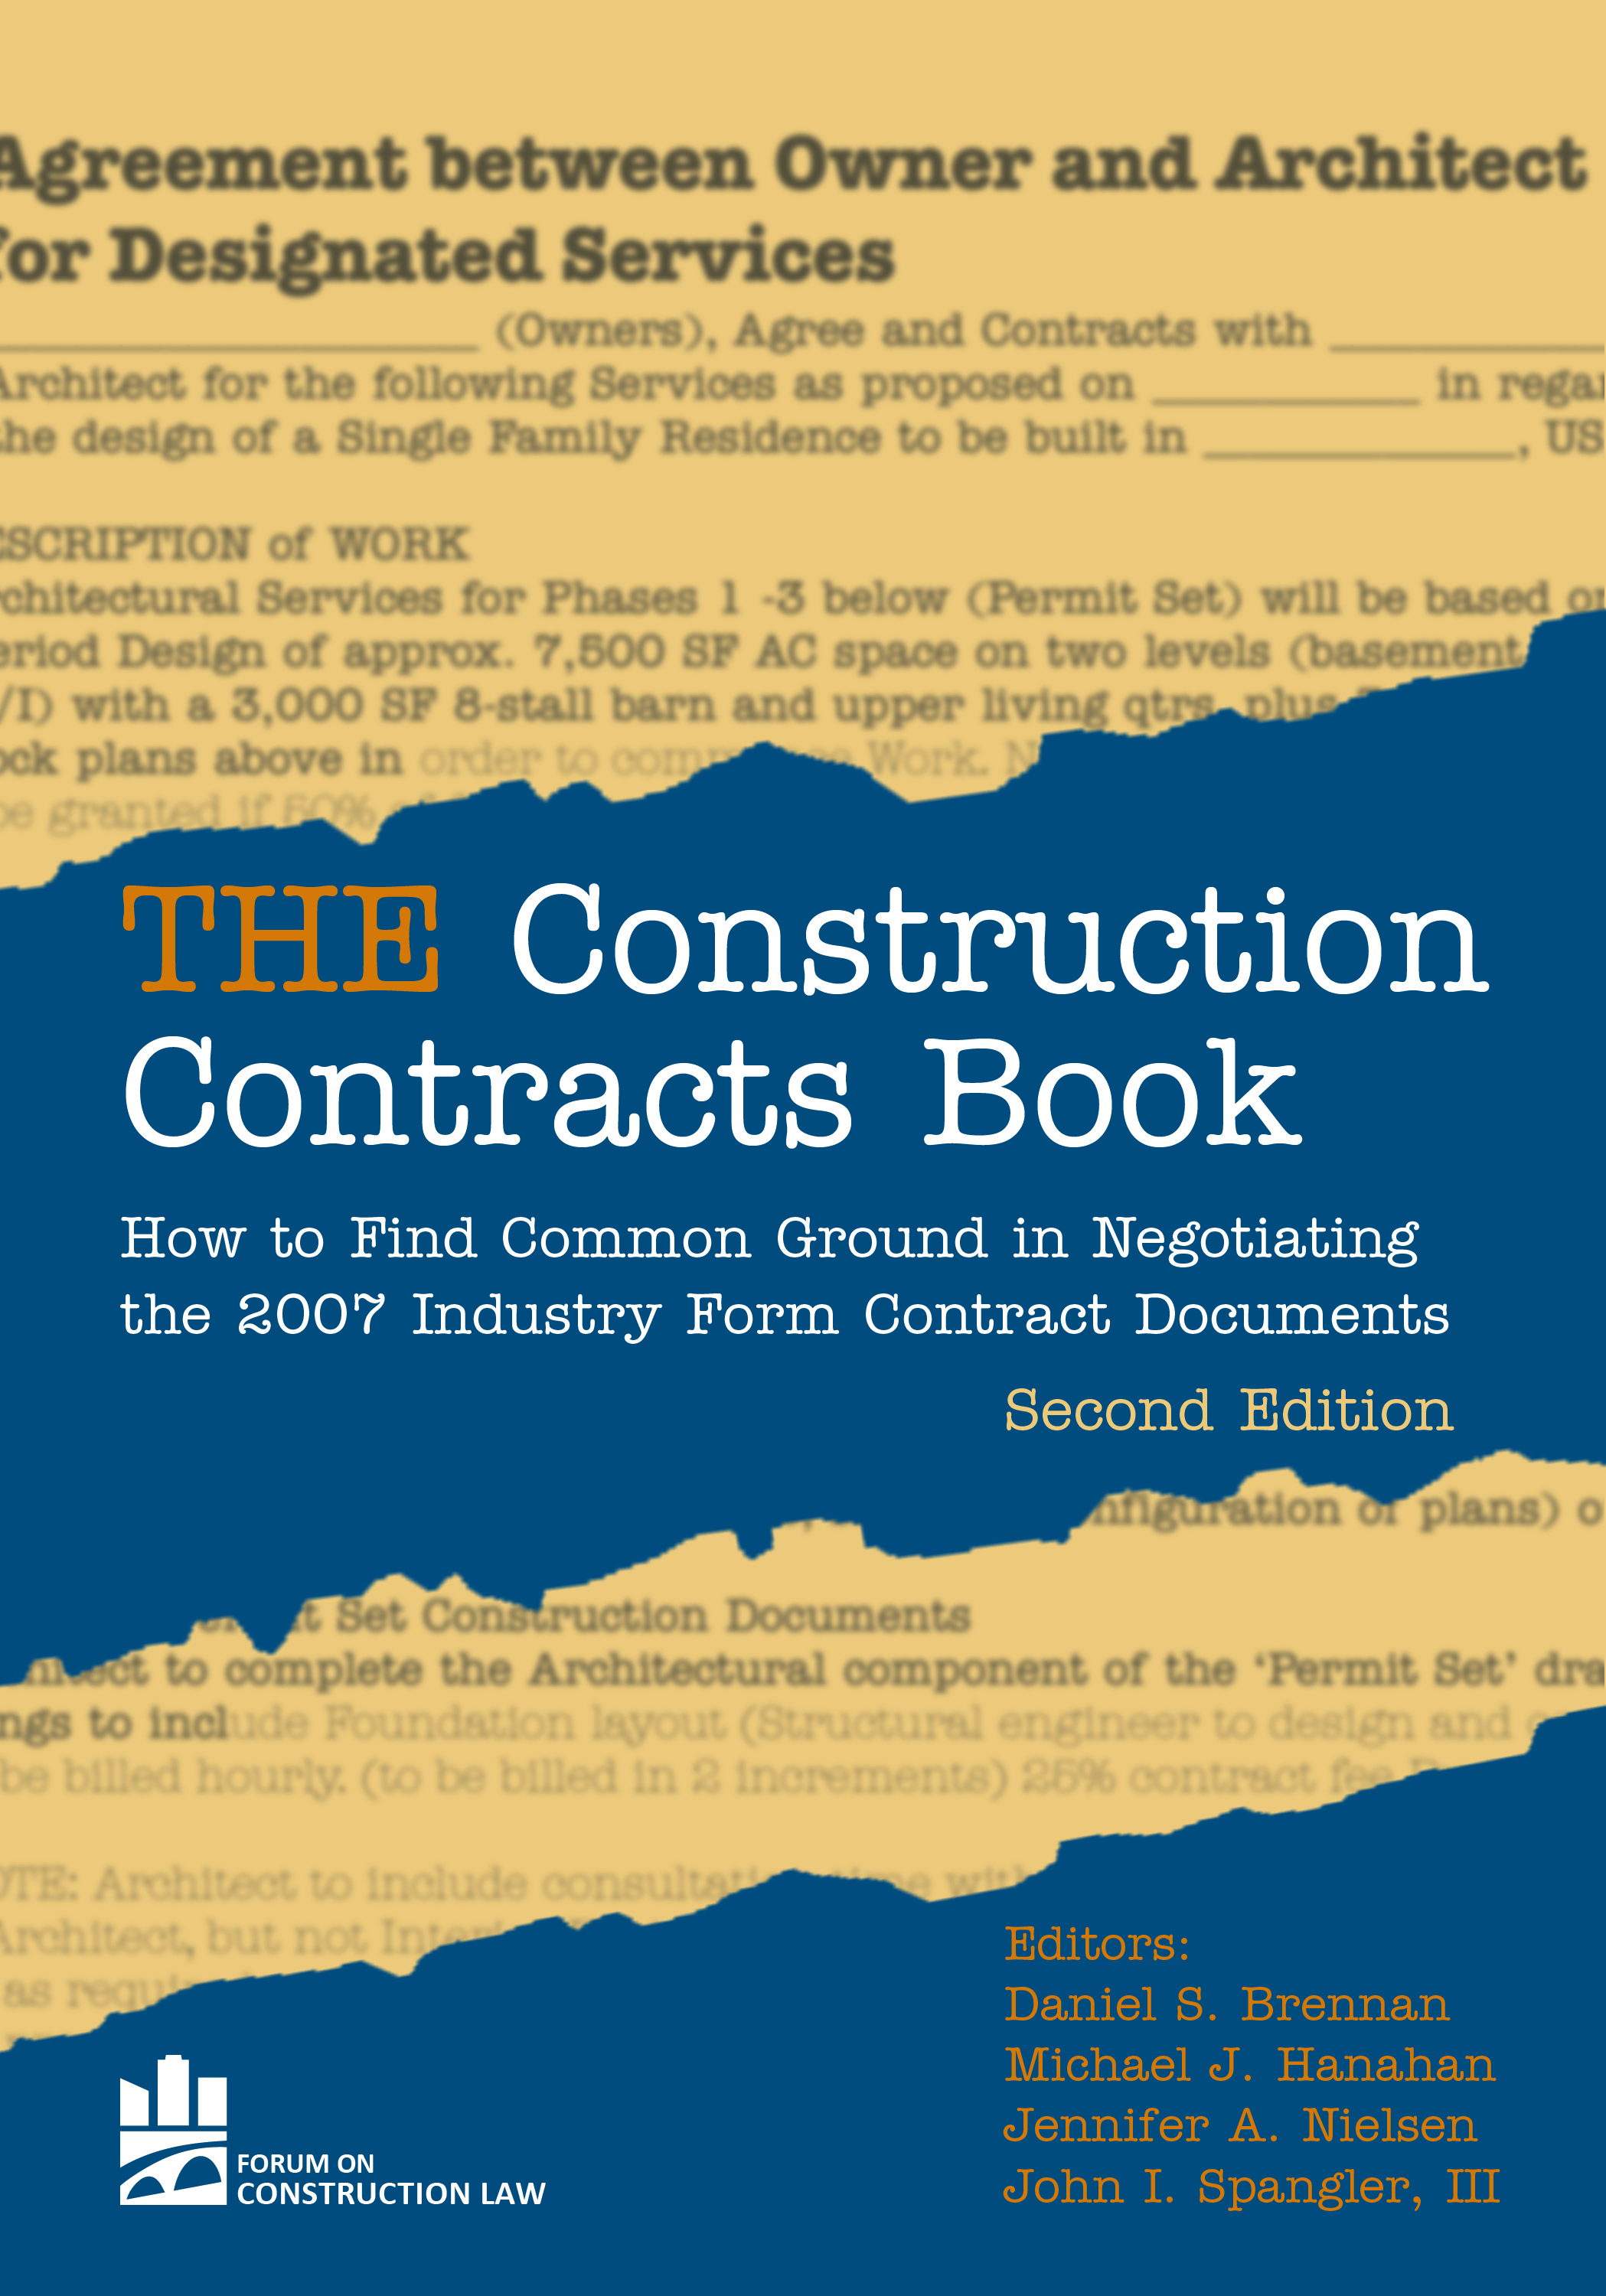 THE Construction Contracts Book: How to Find Common Ground in Negotiating Design and Construction Clauses, Second Edition